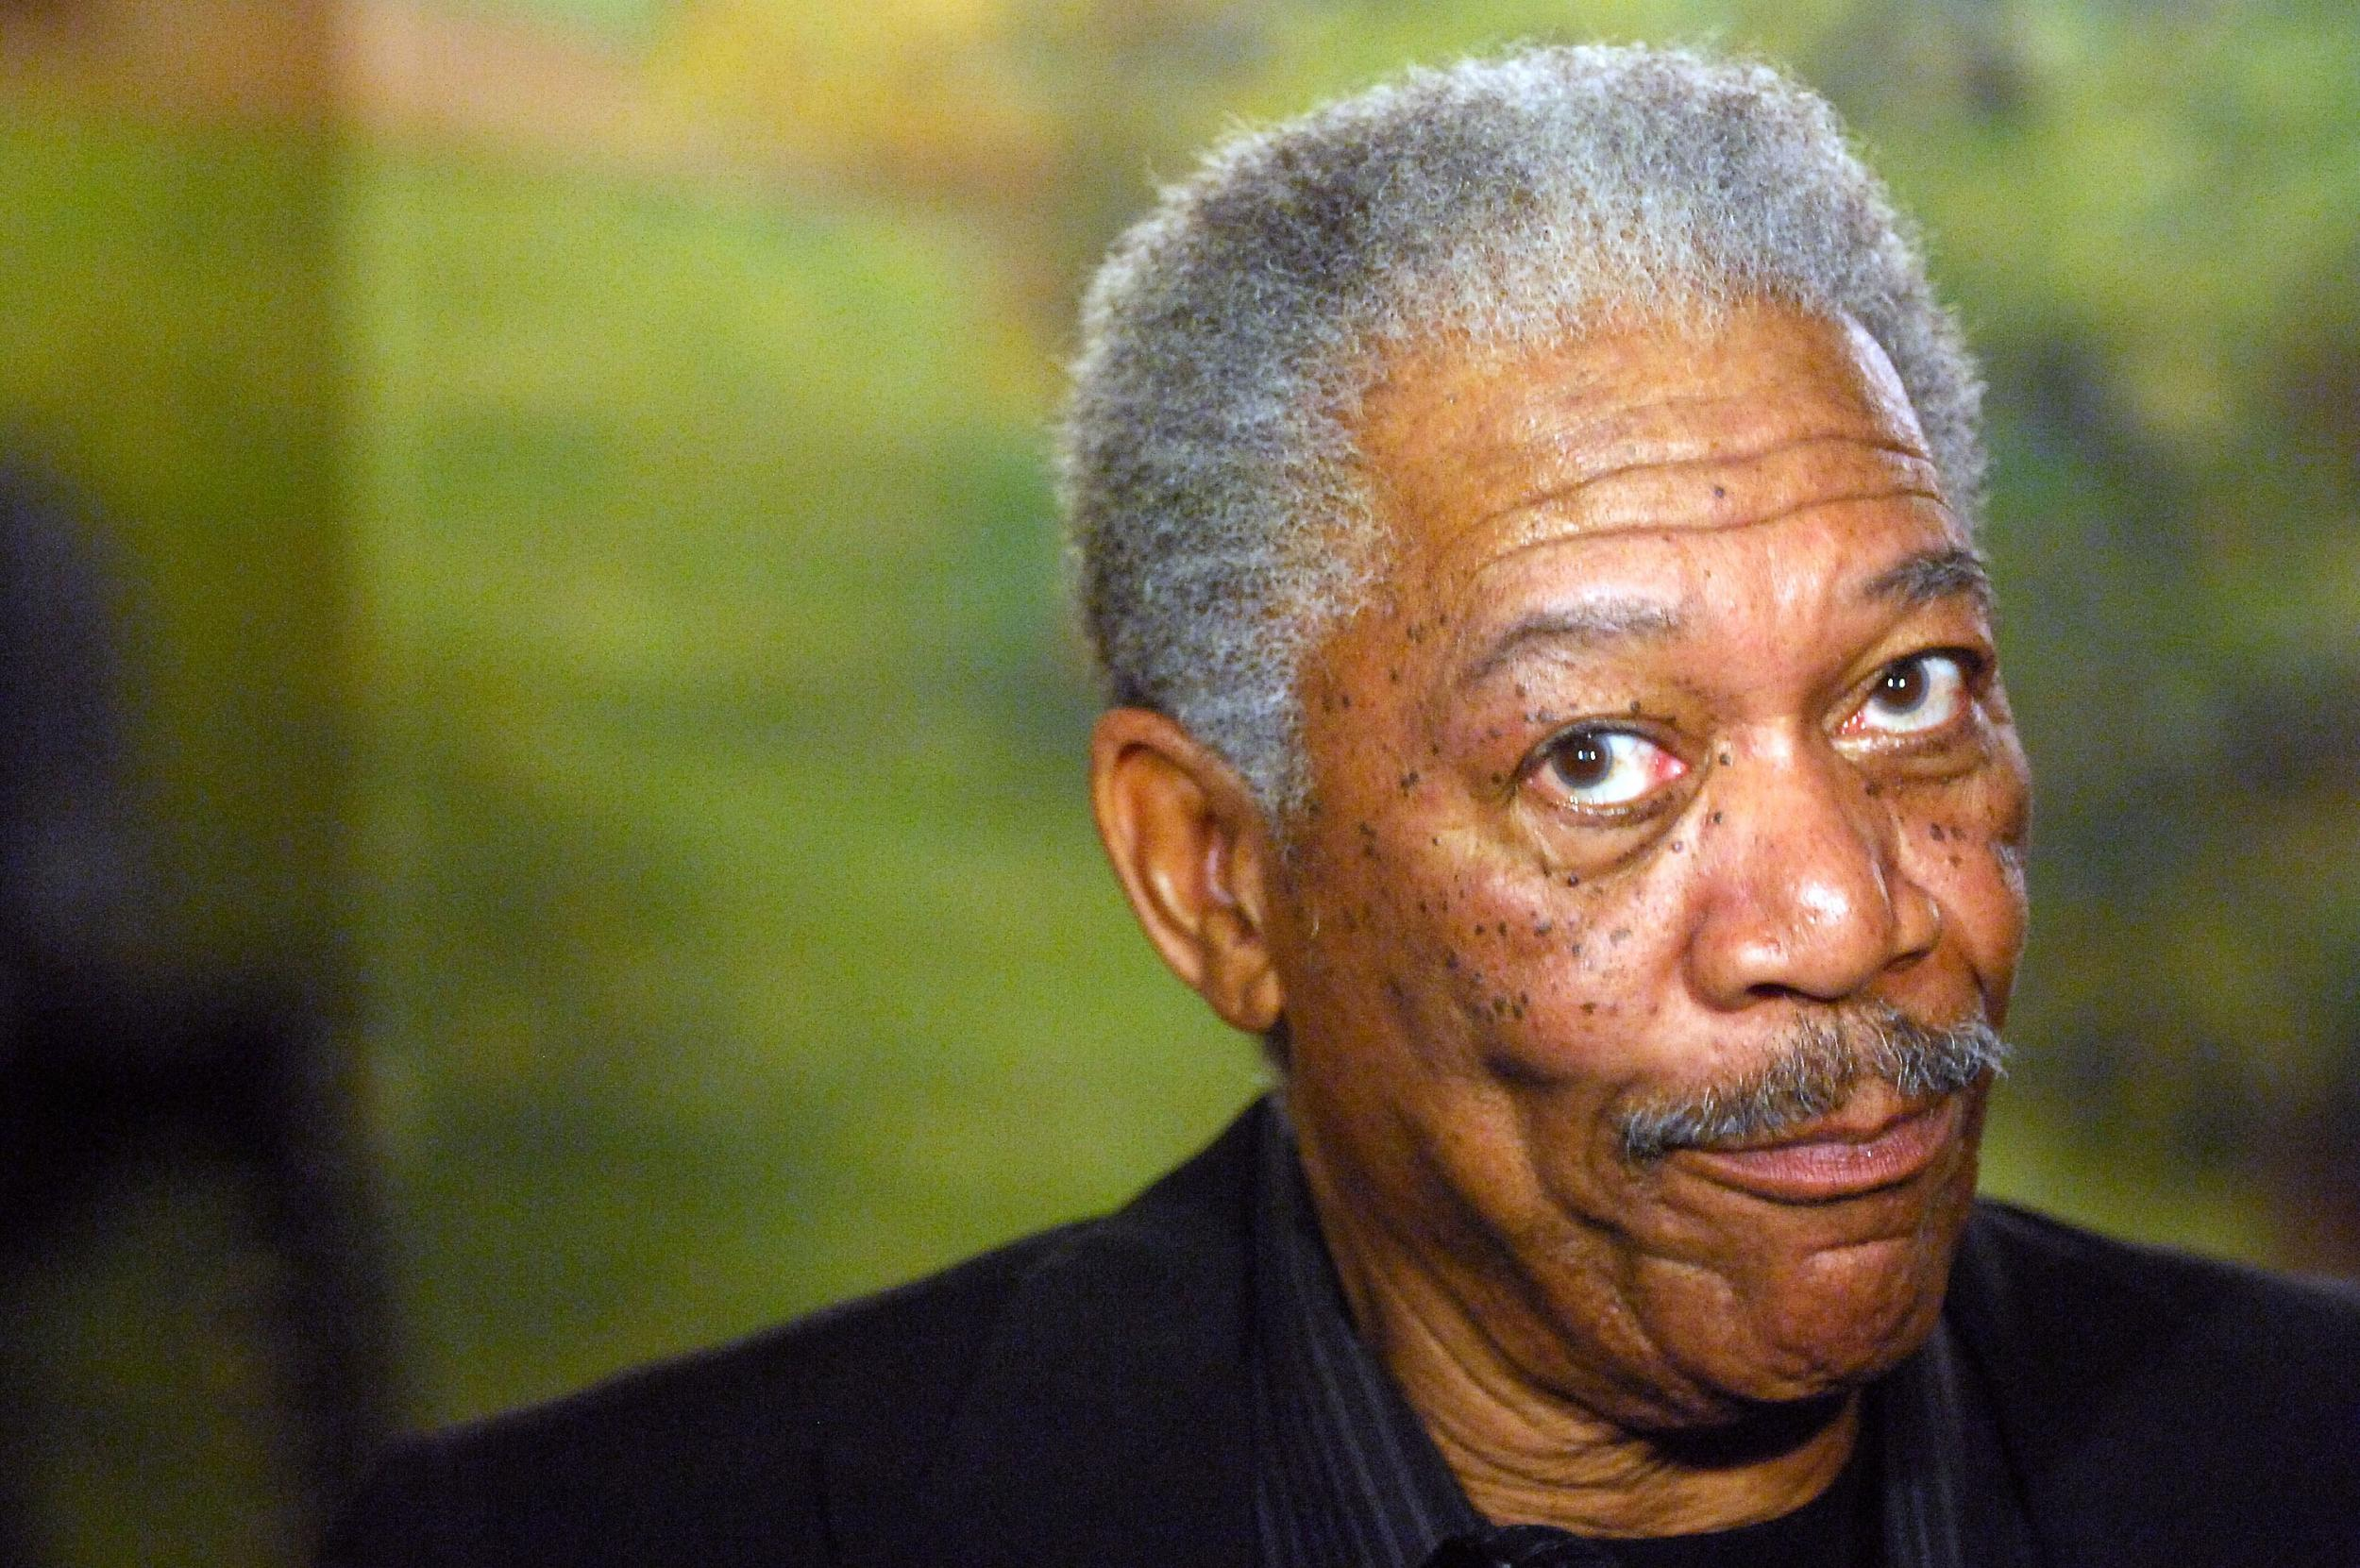 Morgan Freeman In Plane Emergency Landing After Take Off